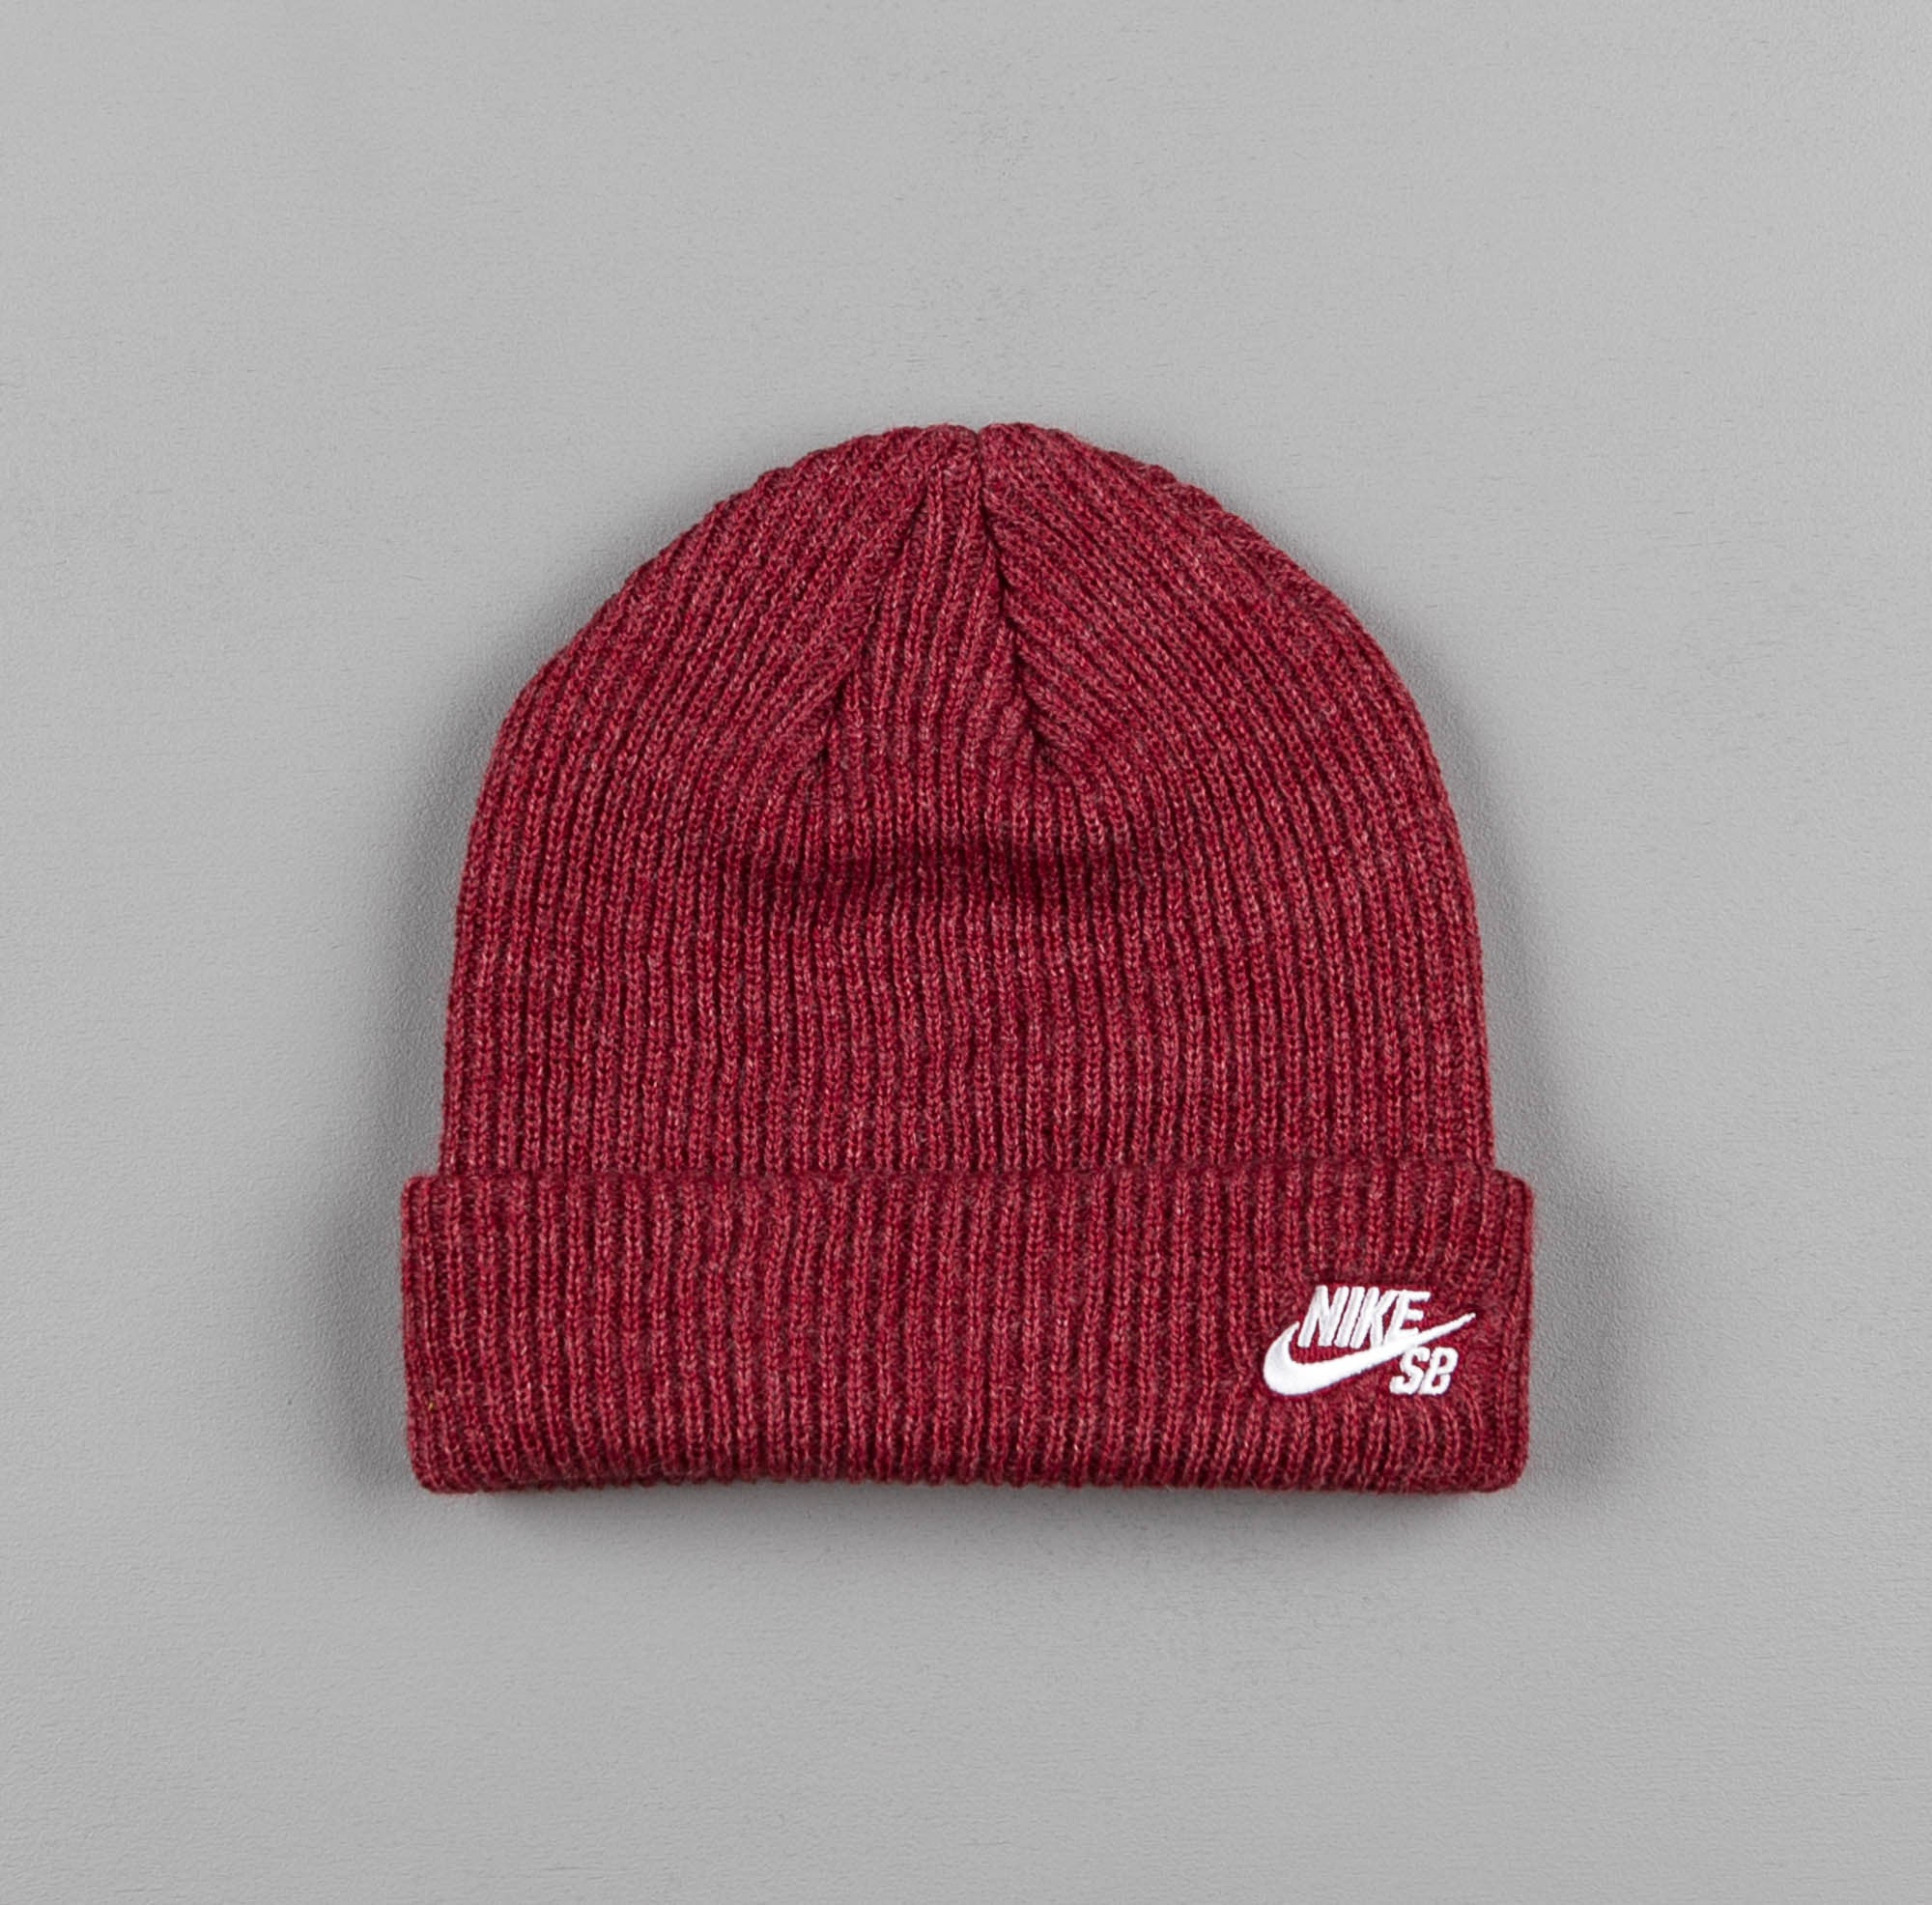 Nike SB Fisherman Cap Beanie - Medium Team Red Heather / White